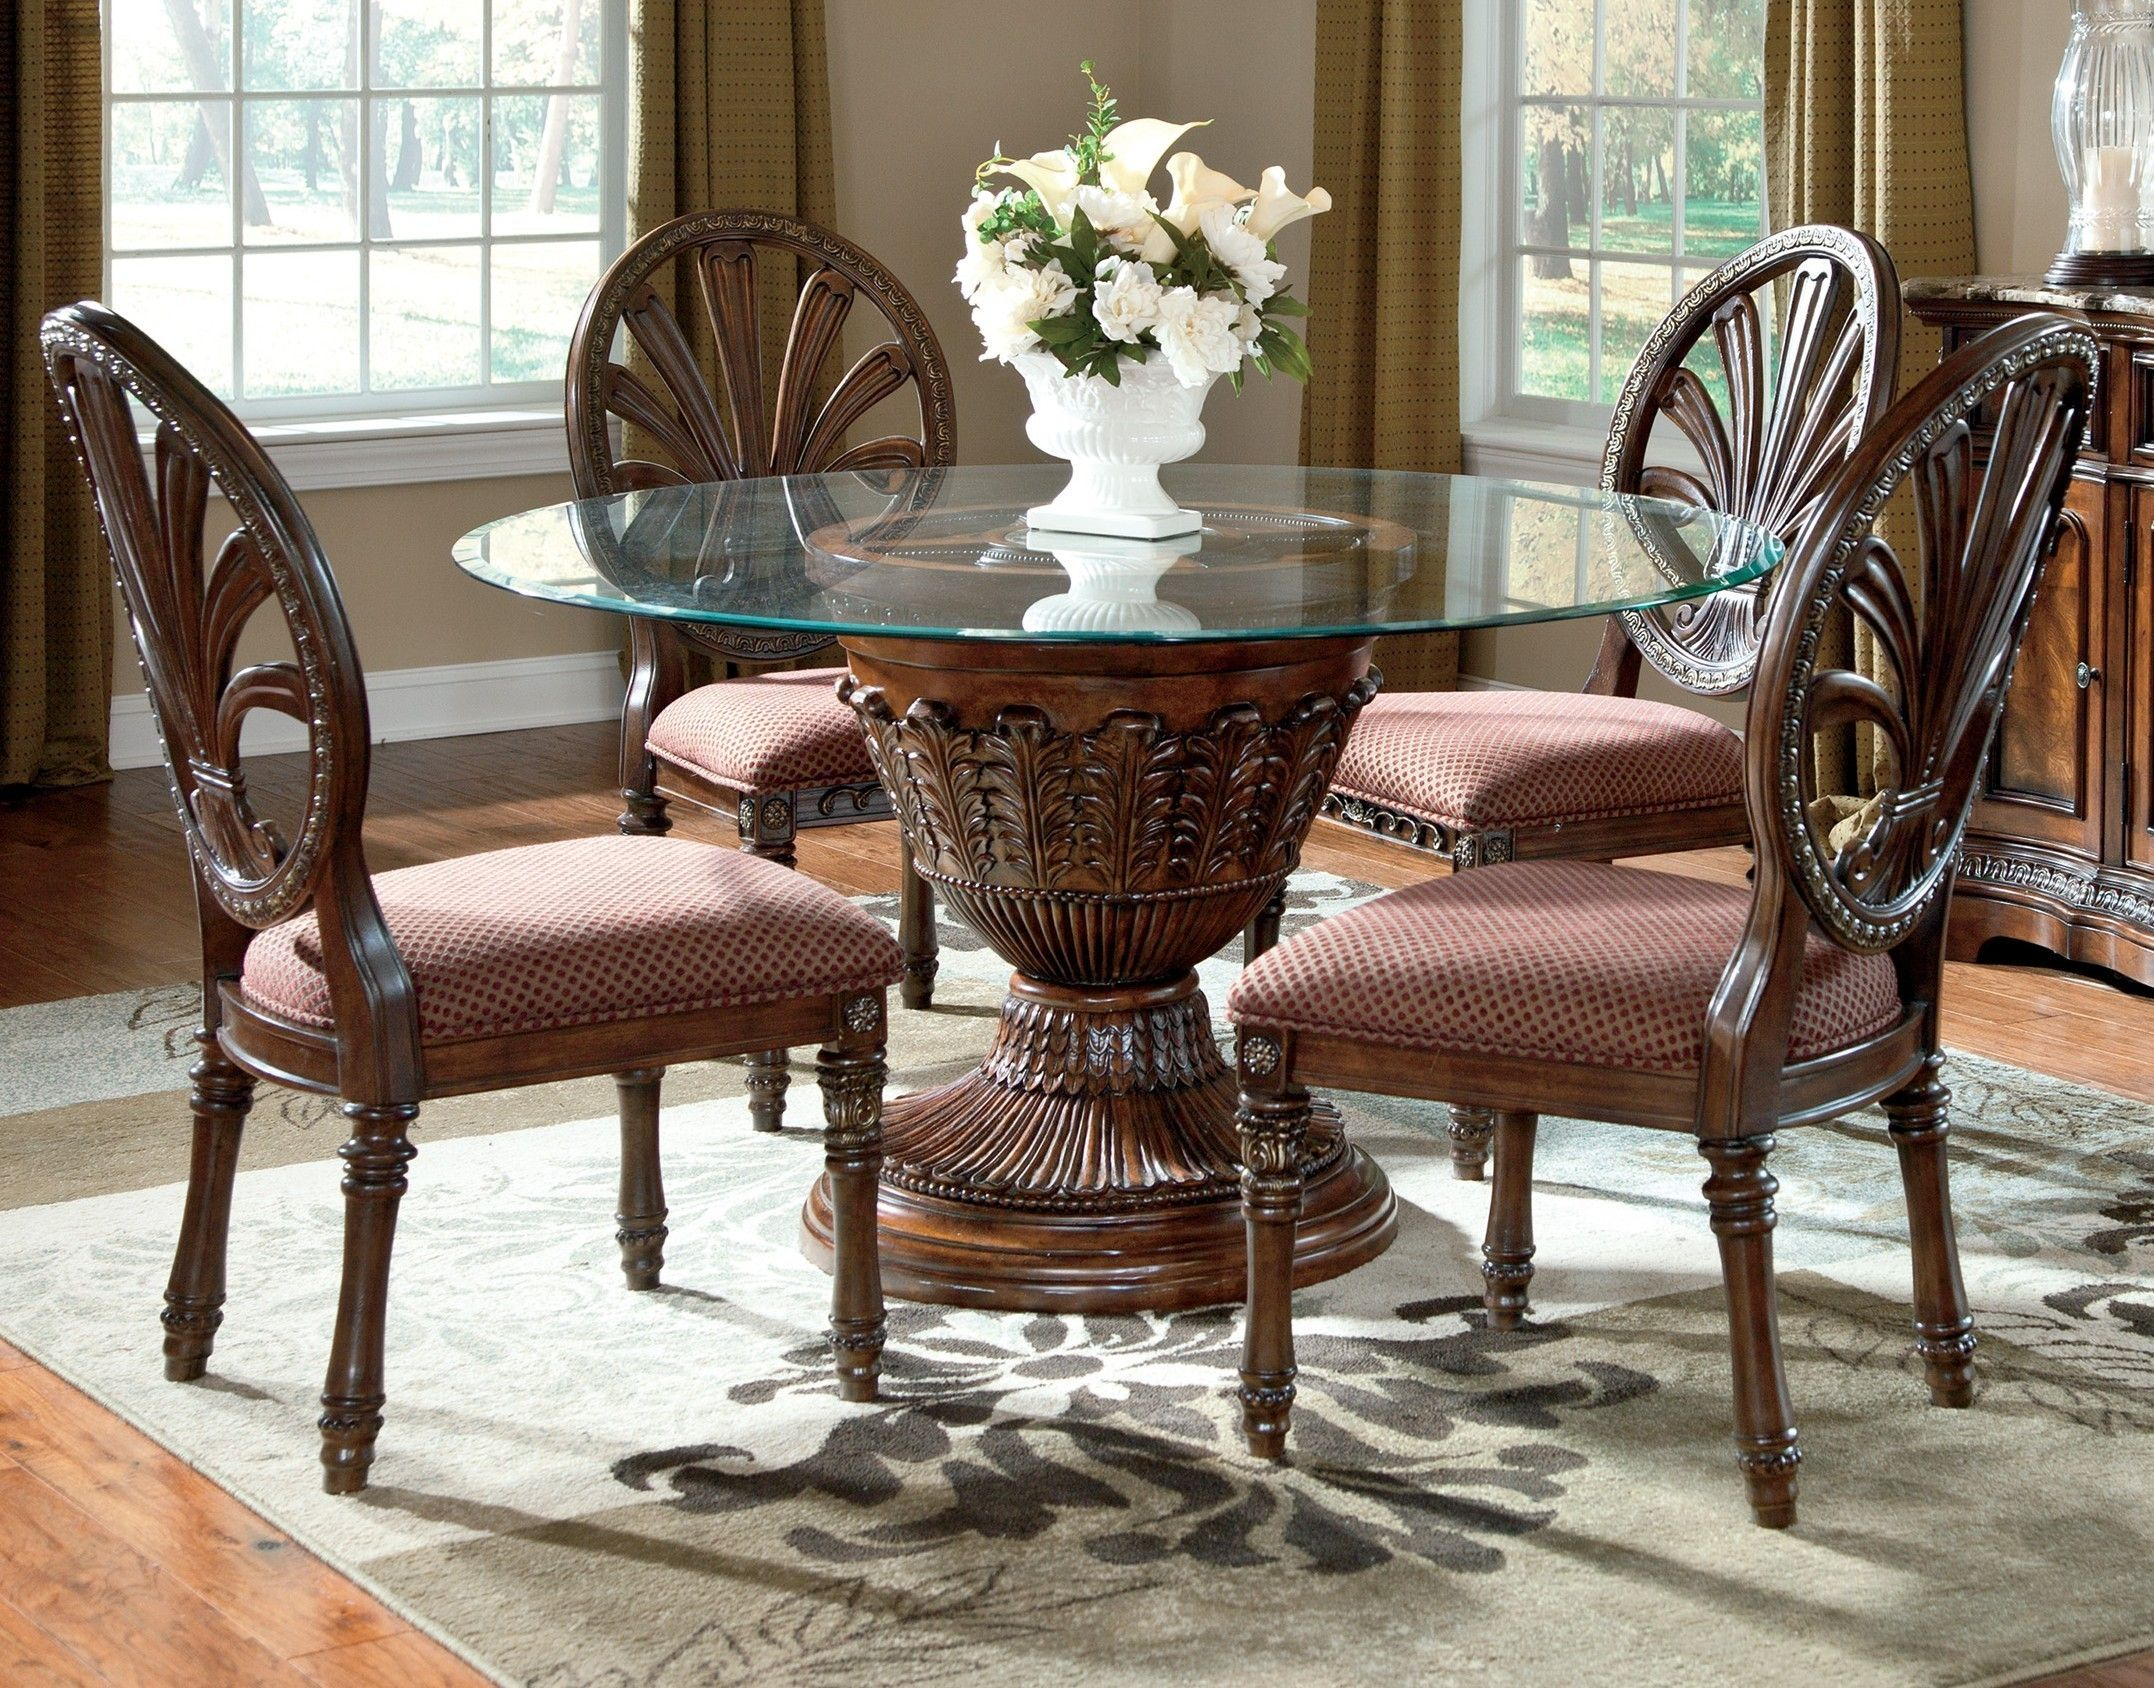 Ashley Furniture Round Dining Room Sets Gallery 1 Margin Auto Item Float